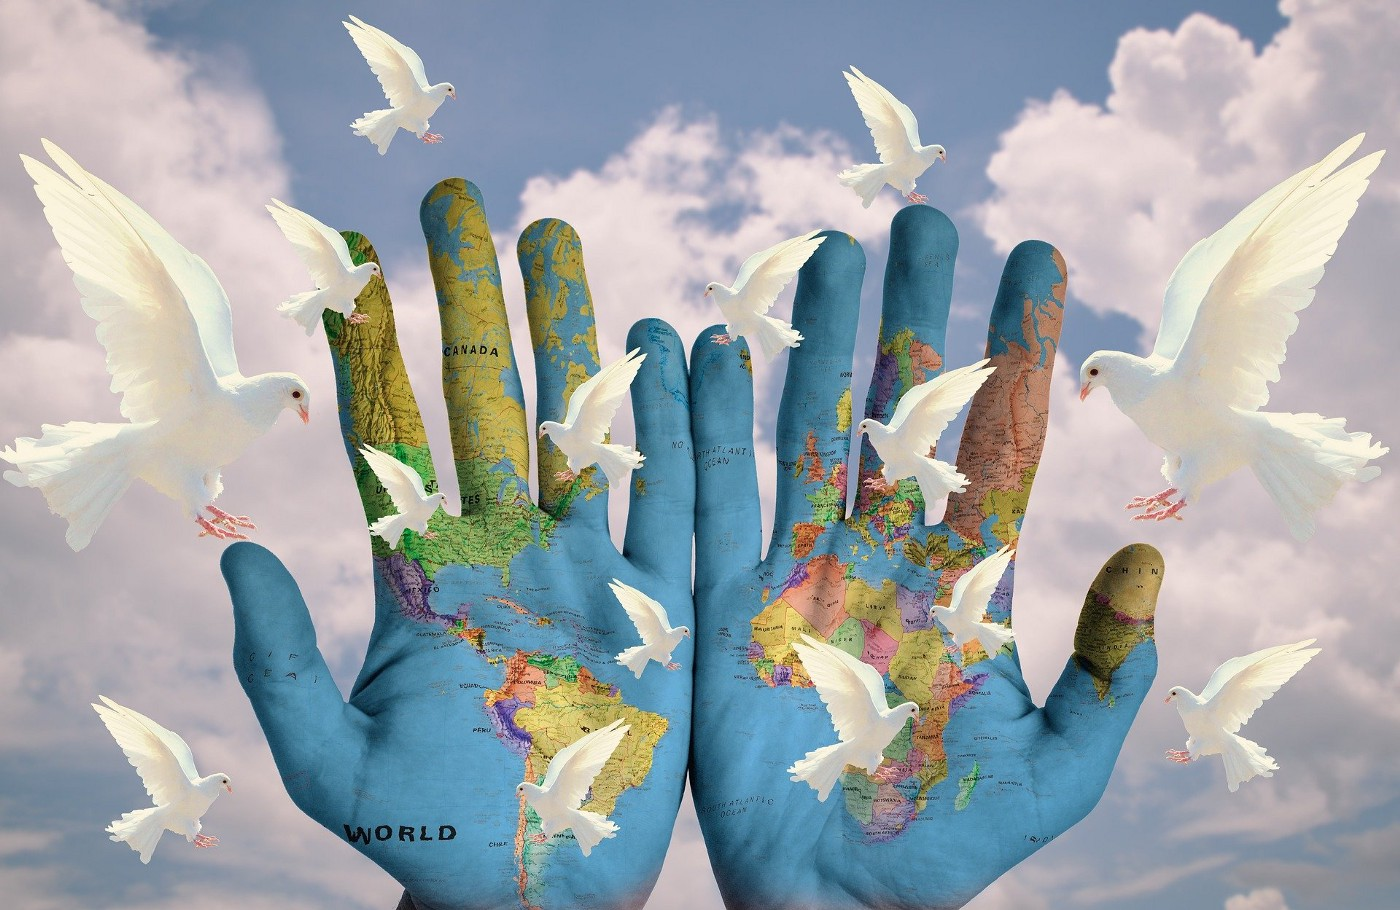 Pair of open hands painted with map of the continents as doves fly above them in symbol of peace.